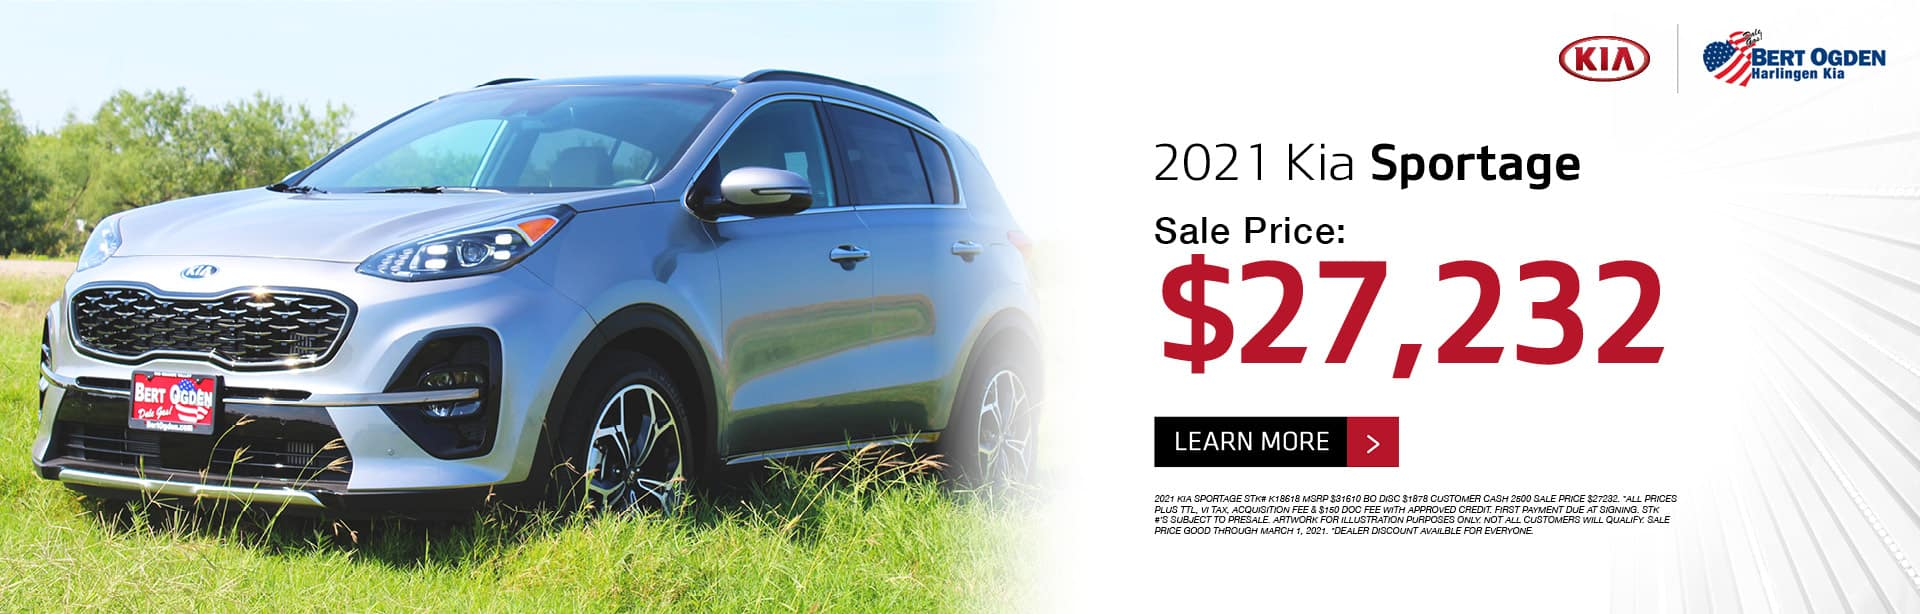 2021 Kia Sportage February 2021 Offer - Bert Ogden Harlingen Kia in Harlingen, Texas